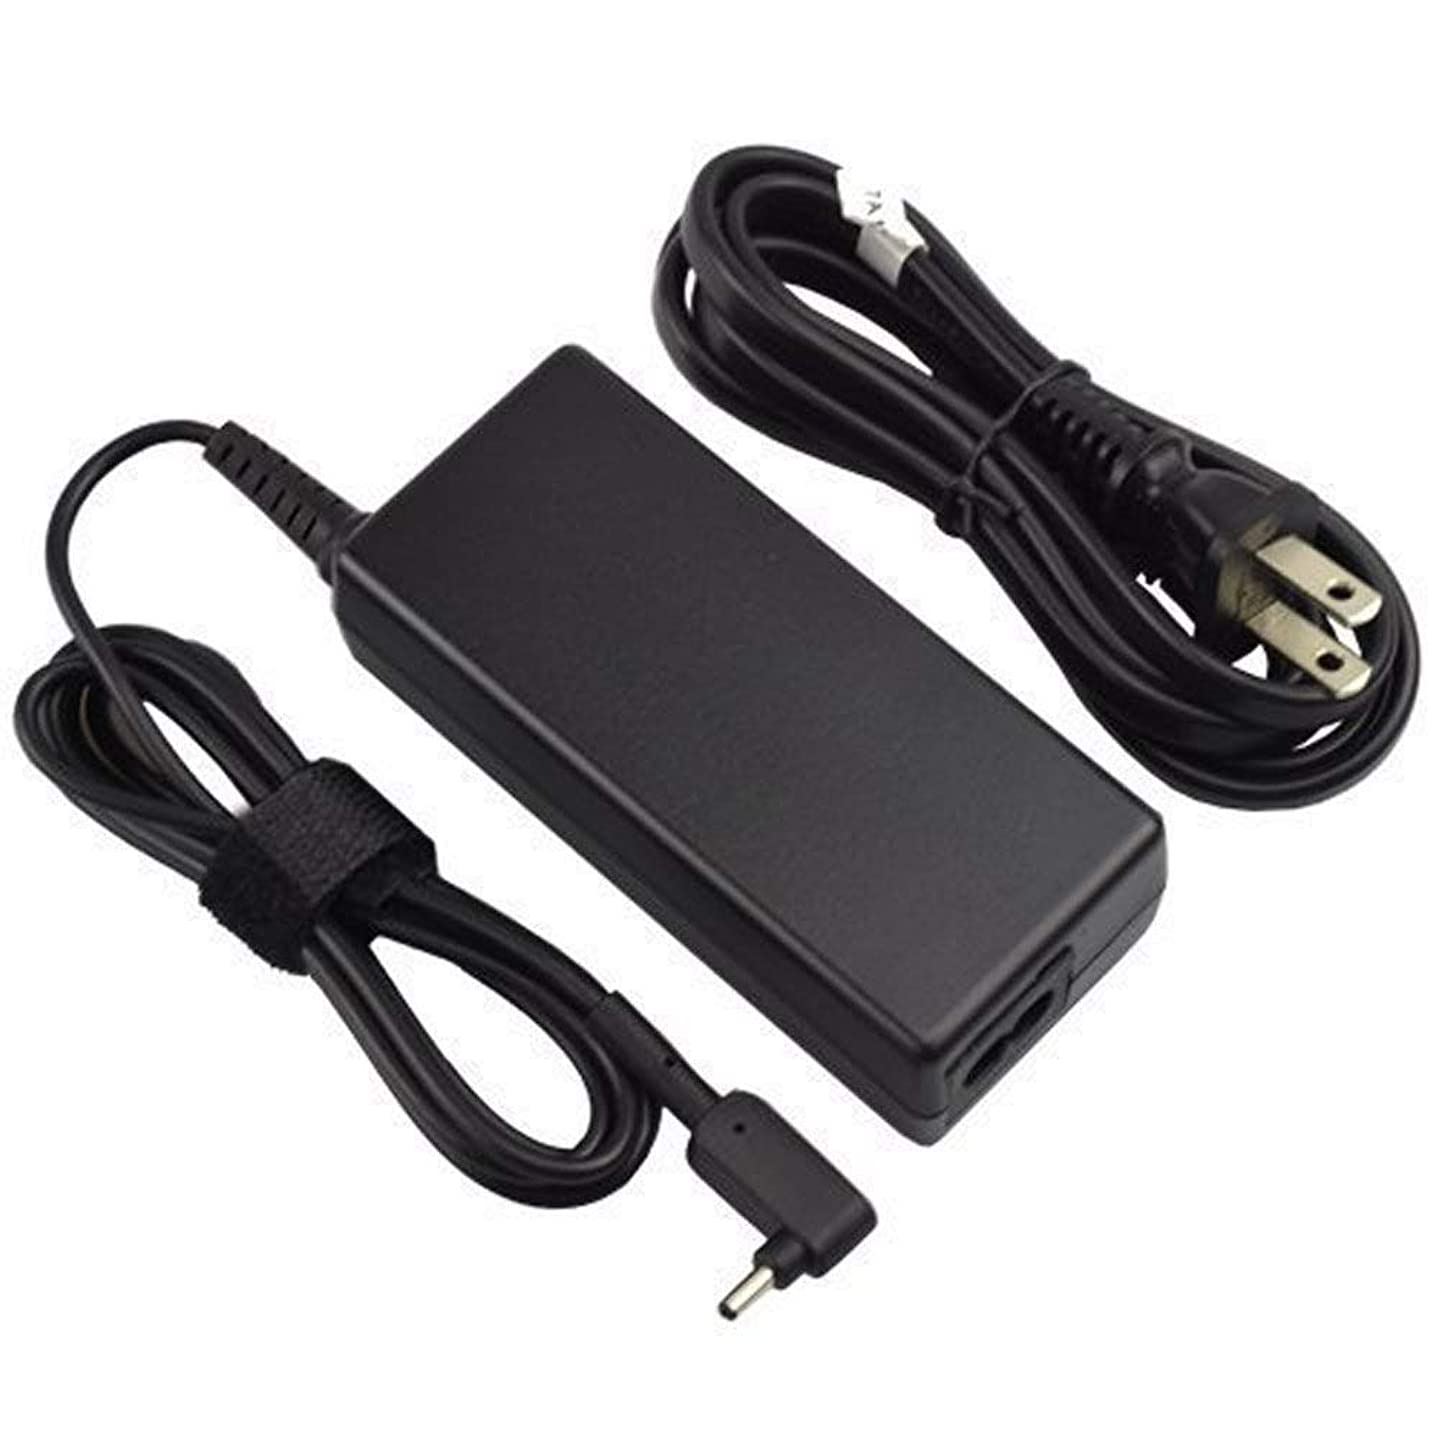 Superer 45W AC Charger Replacement for Acer Aspire V 13 V13 Touch V3-331 V3-371 V3-372 V3-372T Laptop Adapter Power Supply with Extra Cord